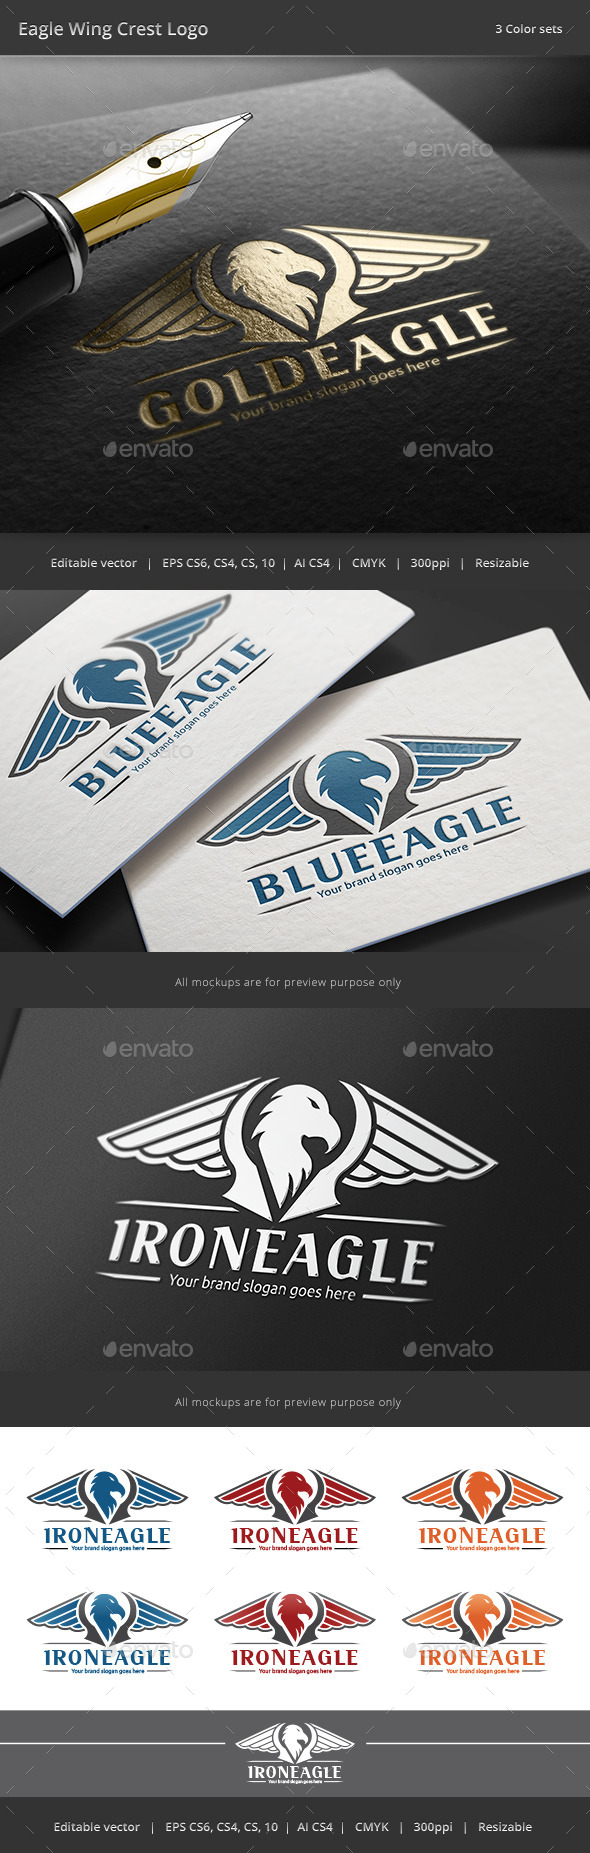 GraphicRiver Eagle Wing Crest Logo 8794335